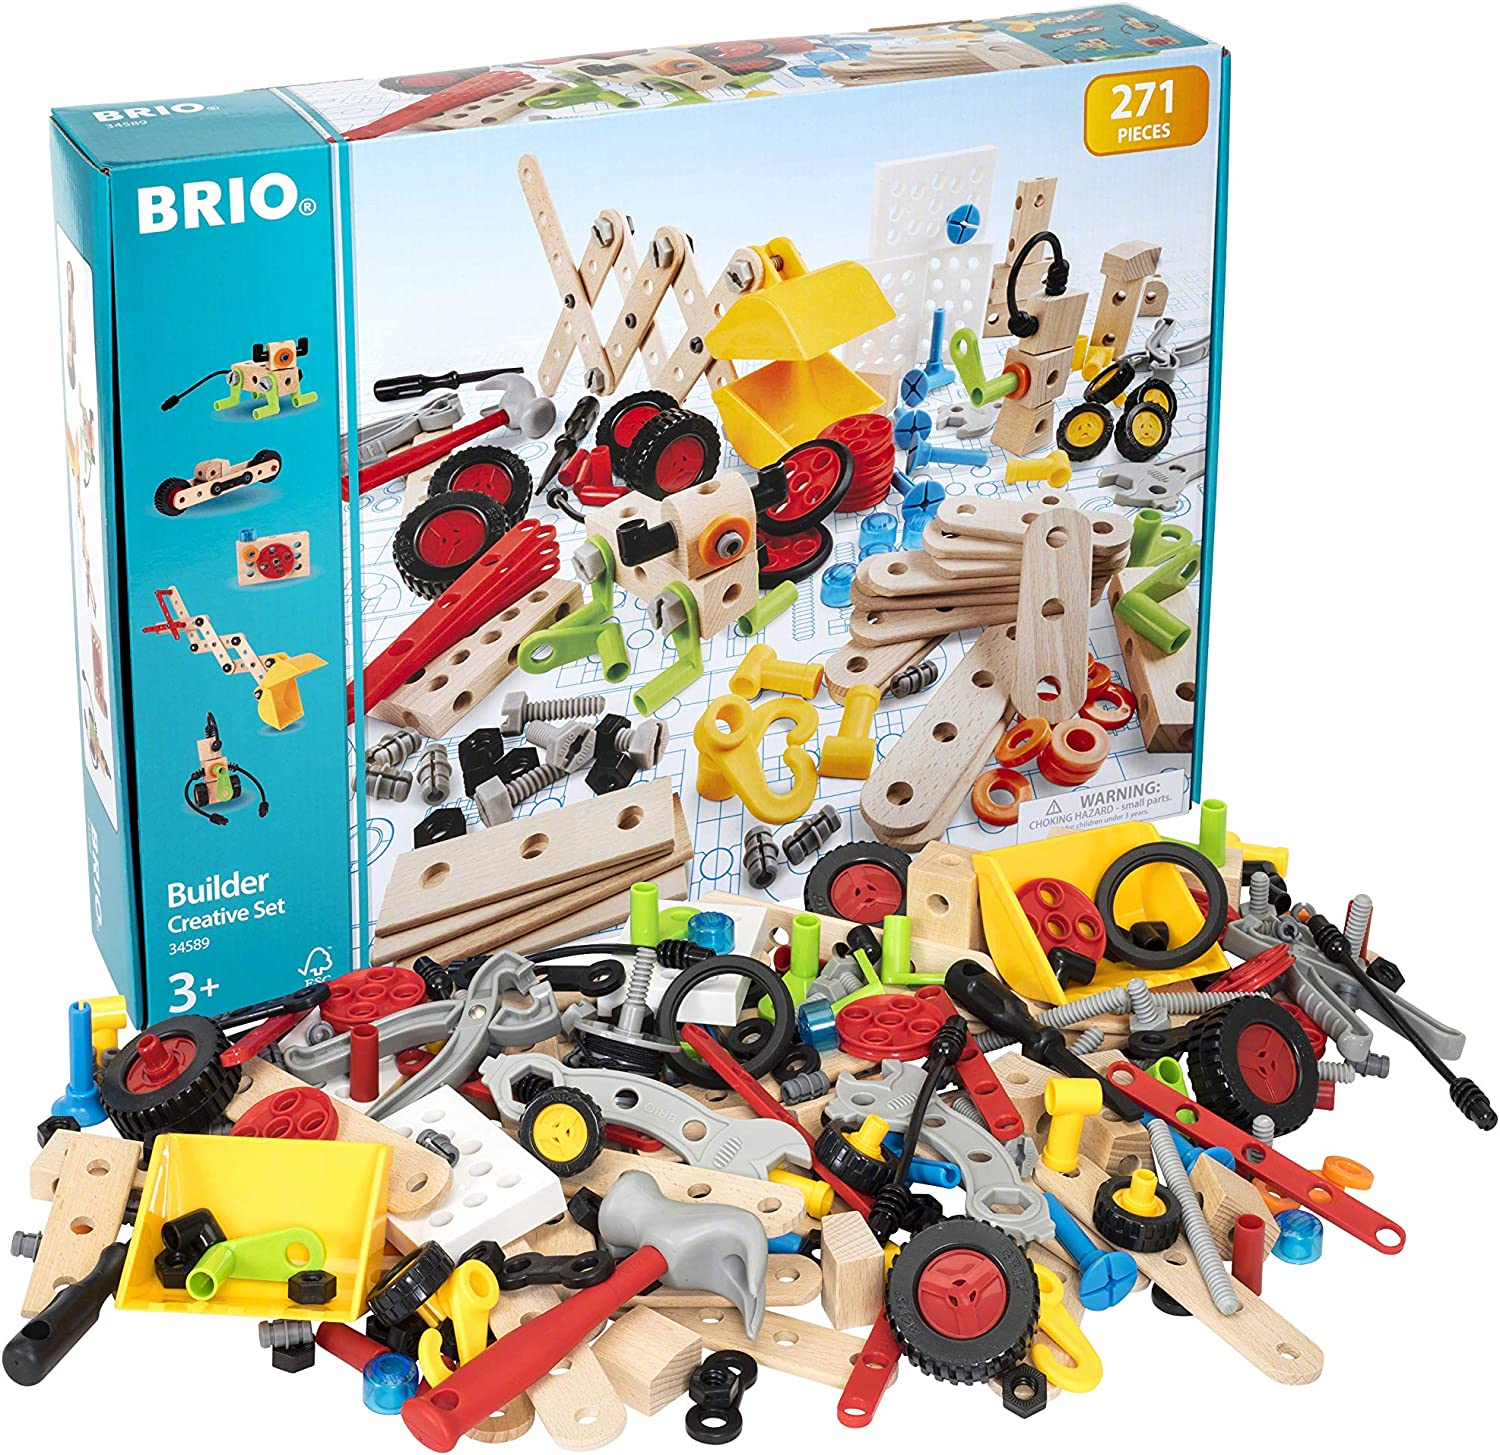 BRIO Builder 34589 - Builder Creative Set - 271 Piece Construction Set STEM Toy with Wood and Plastic Pieces for Kids Age 3 and Up